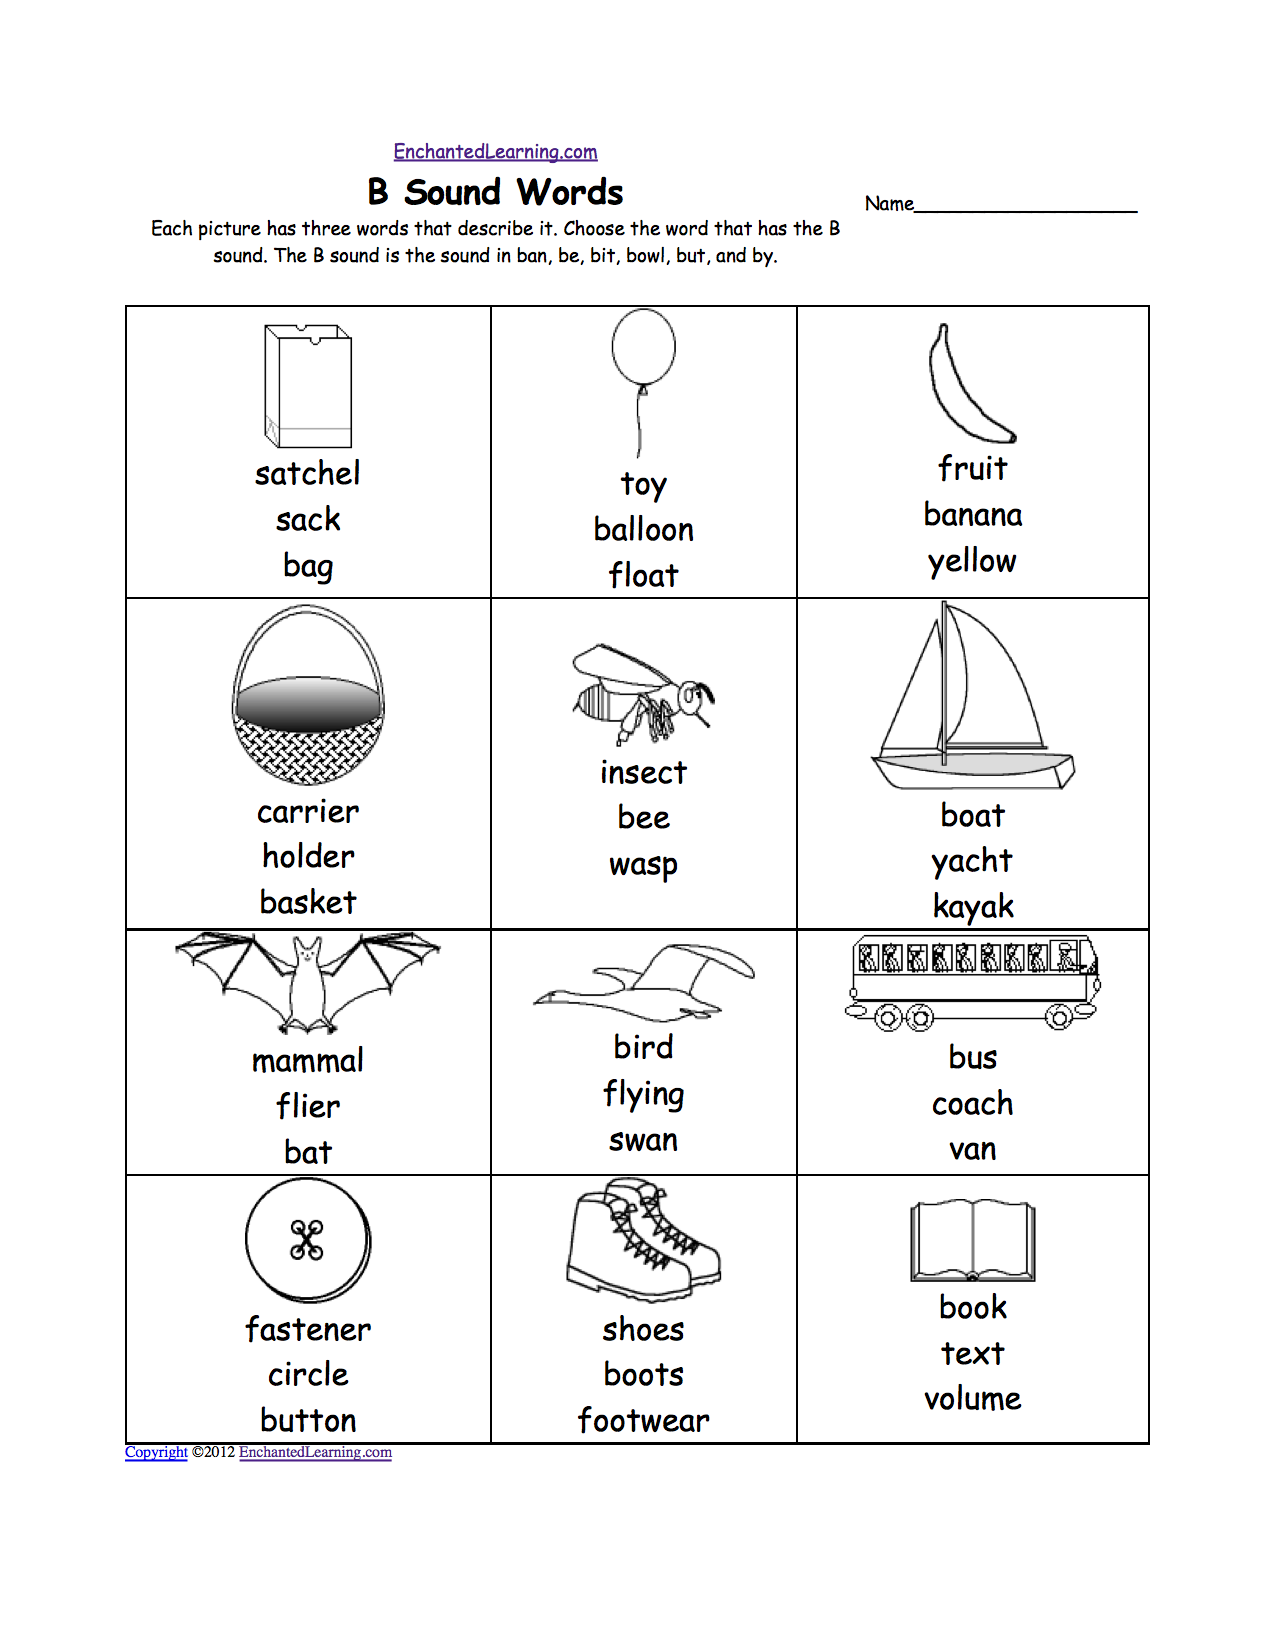 Aldiablosus  Inspiring Phonics Worksheets Multiple Choice Worksheets To Print  With Extraordinary Quotbquot Sound Phonics Worksheet Multiple Choice Each Picture Has Three Words That Describe It Choose The Word That Has A Quotbquot Sound The Quotbquot Sound Is The Sound  With Charming Distance Formula Word Problems Worksheet Also Building Self Esteem Worksheets In Addition Substance Use Worksheets And Science Worksheets For Rd Grade Free As Well As Causes Of The Revolutionary War Worksheet Additionally Sickle Cell Mutation Worksheet Answers From Enchantedlearningcom With Aldiablosus  Extraordinary Phonics Worksheets Multiple Choice Worksheets To Print  With Charming Quotbquot Sound Phonics Worksheet Multiple Choice Each Picture Has Three Words That Describe It Choose The Word That Has A Quotbquot Sound The Quotbquot Sound Is The Sound  And Inspiring Distance Formula Word Problems Worksheet Also Building Self Esteem Worksheets In Addition Substance Use Worksheets From Enchantedlearningcom